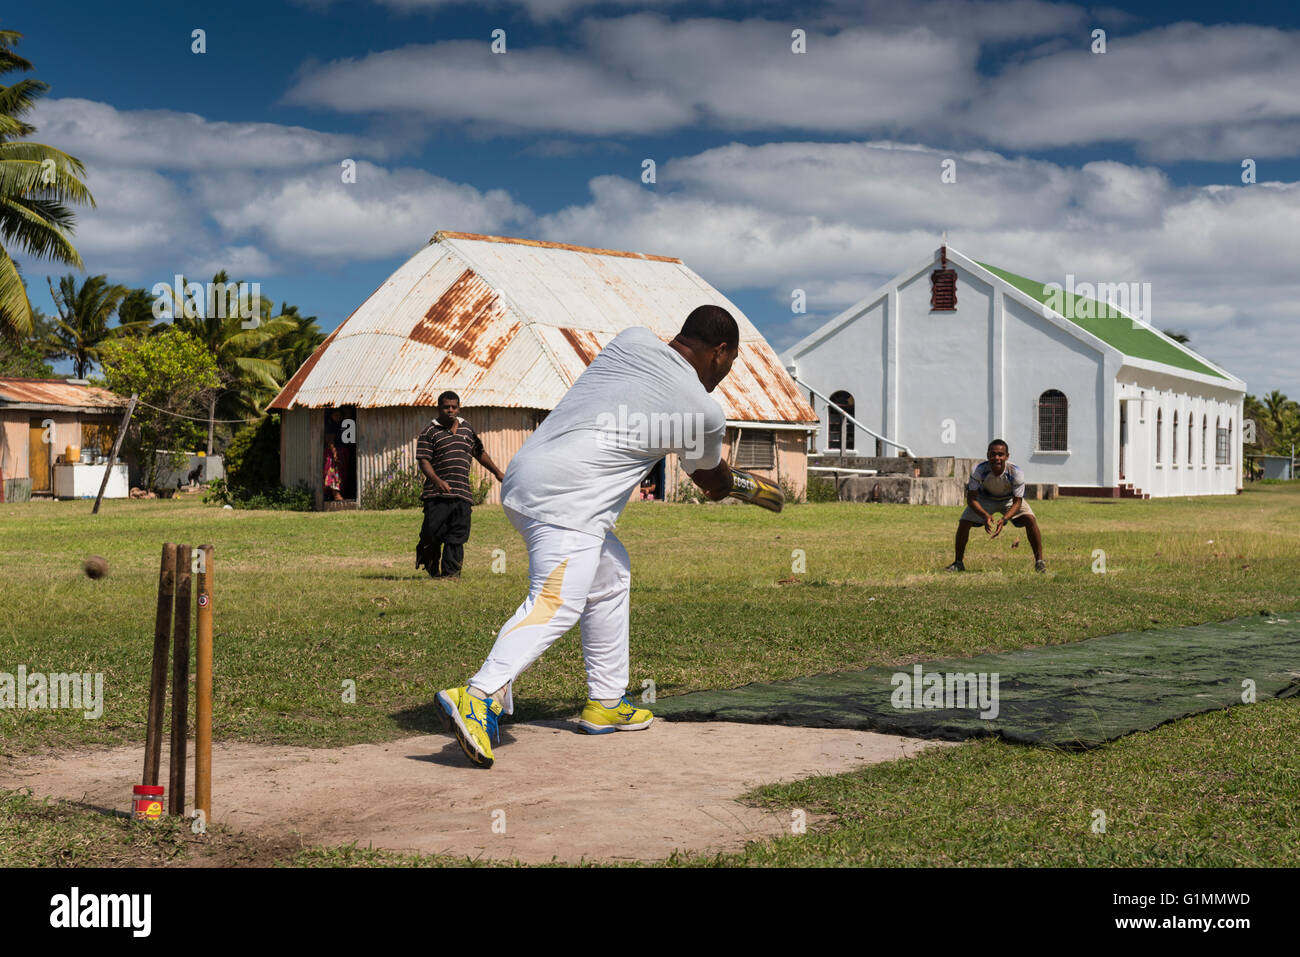 What the British left the Fijians! Wednesday cricket match on the strip in front of the Methodist Church and Kelepi - Stock Image